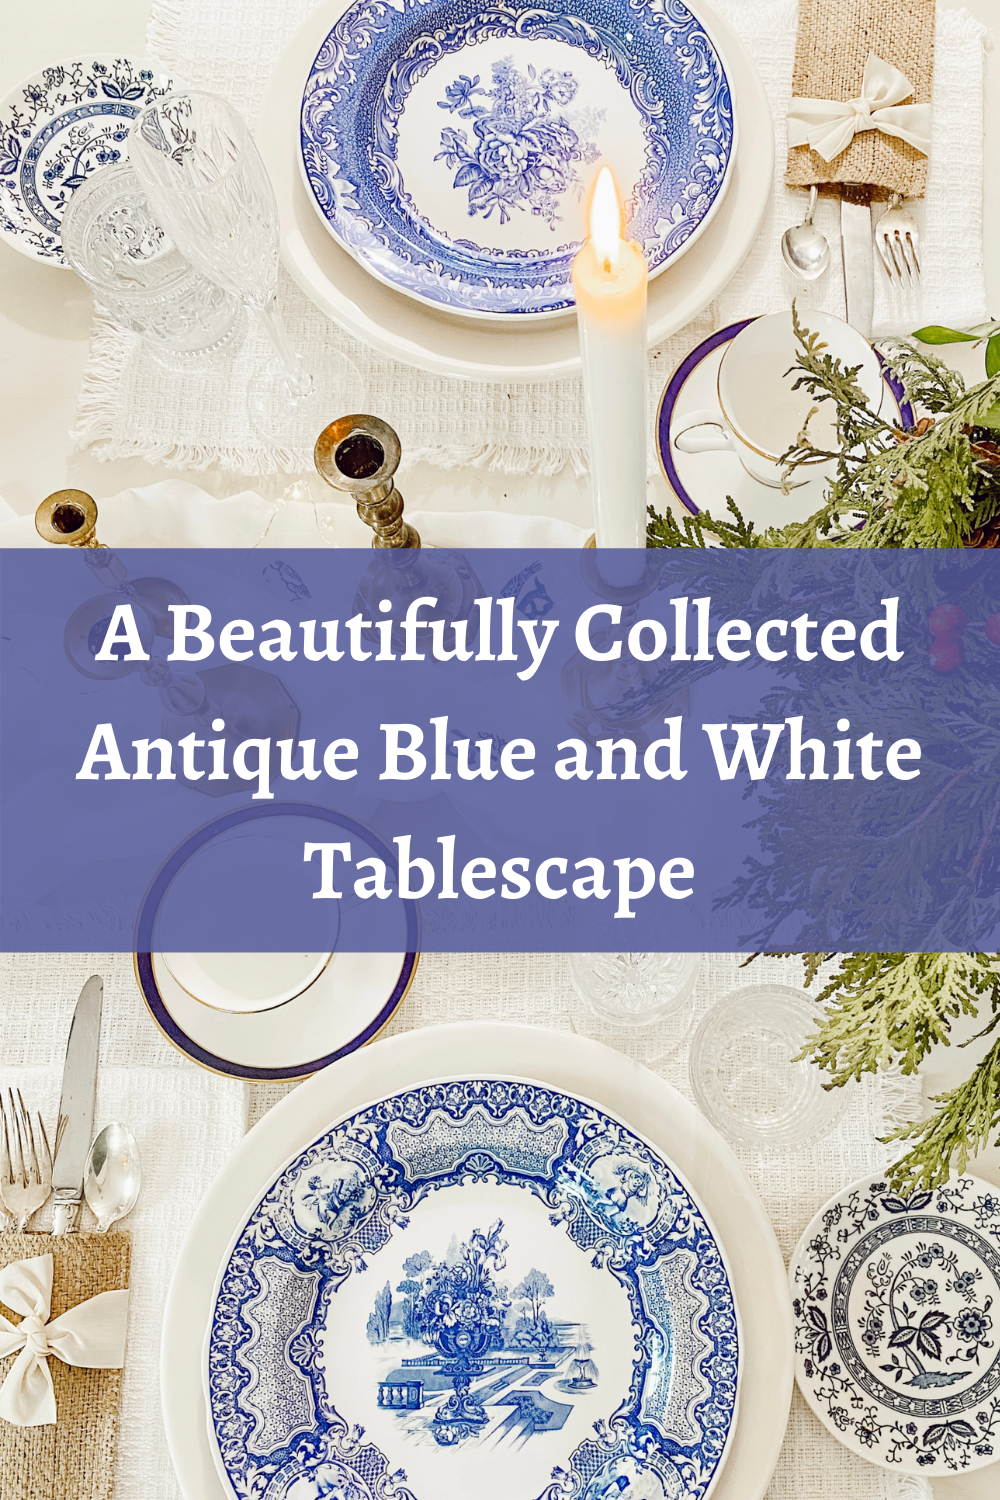 A Beautifully Collected Antique Blue and White Tablescape